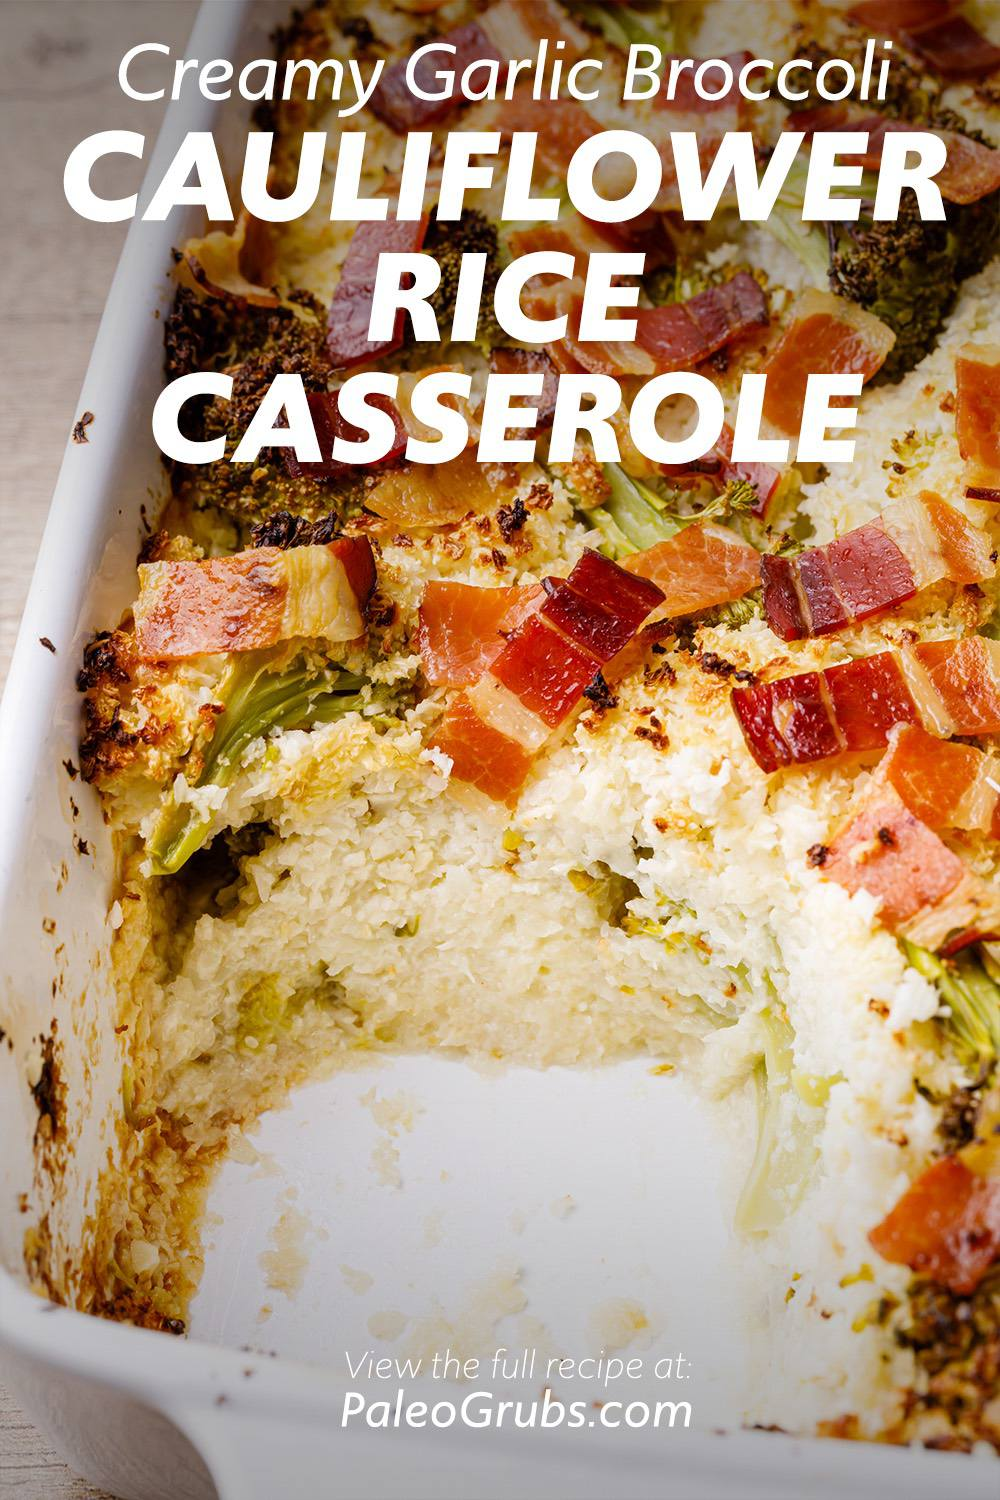 Creamy Garlic Broccoli Cauliflower Rice Casserole